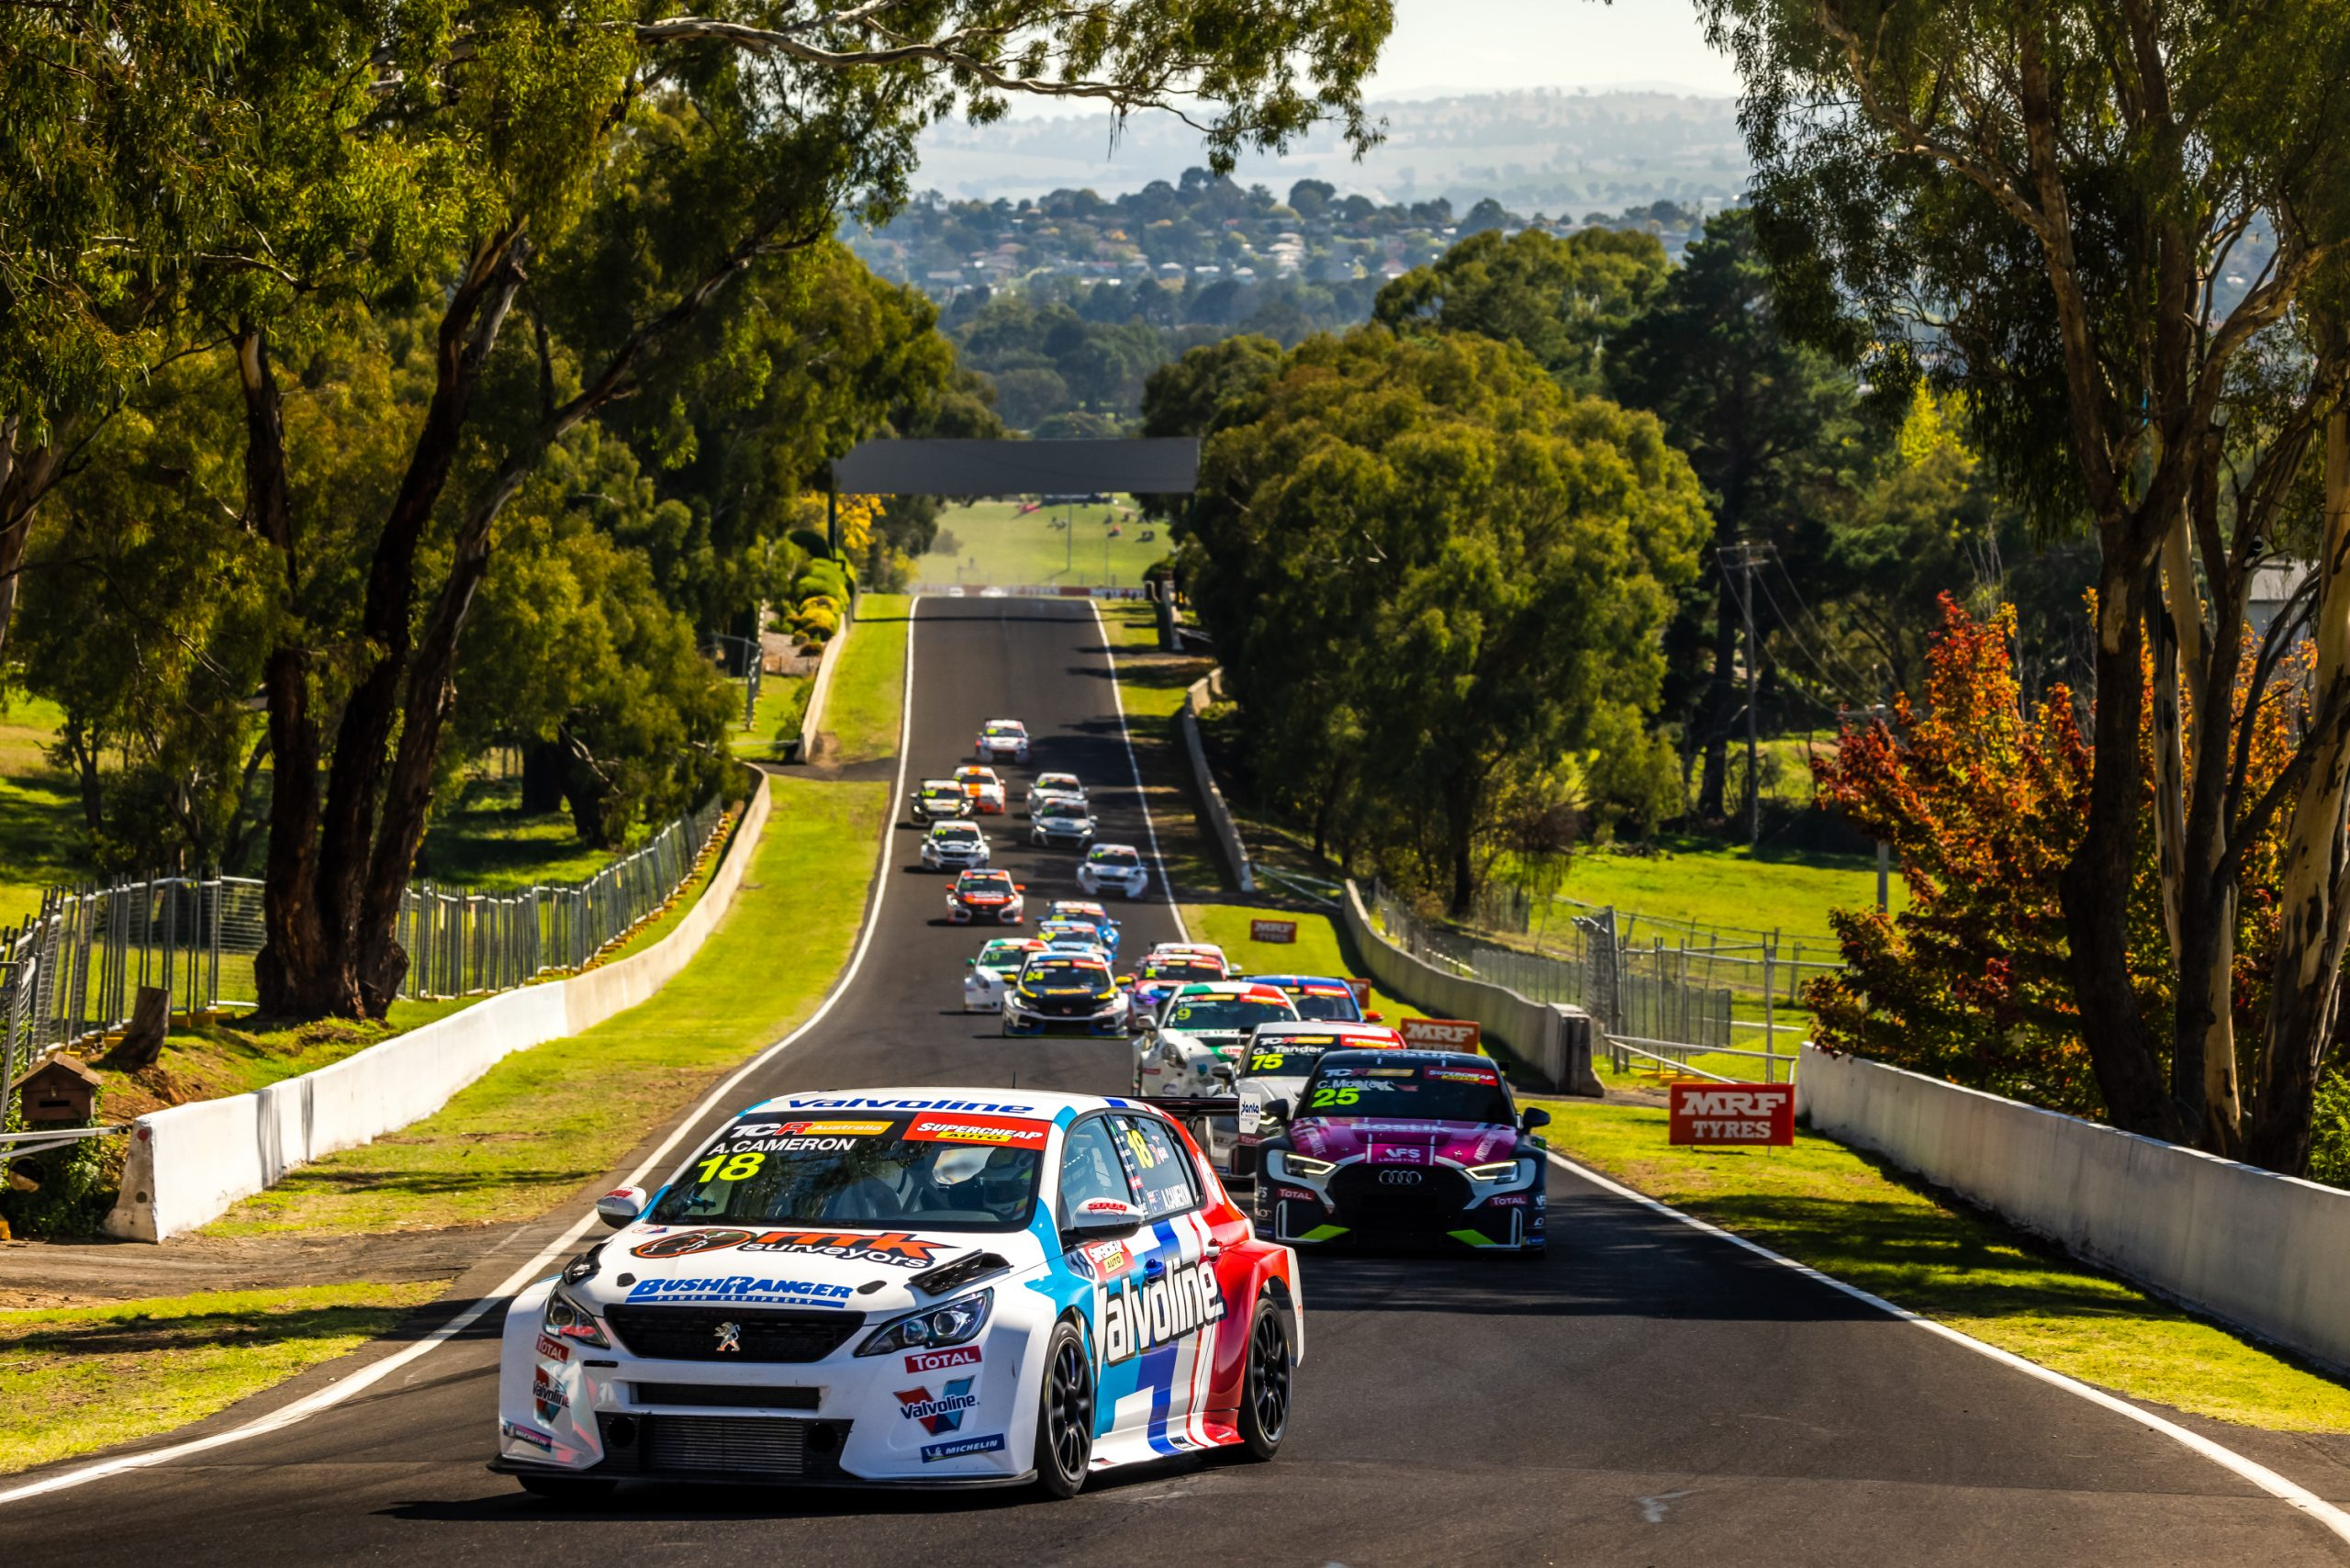 Super Saturday at the Bathurst 6 Hour